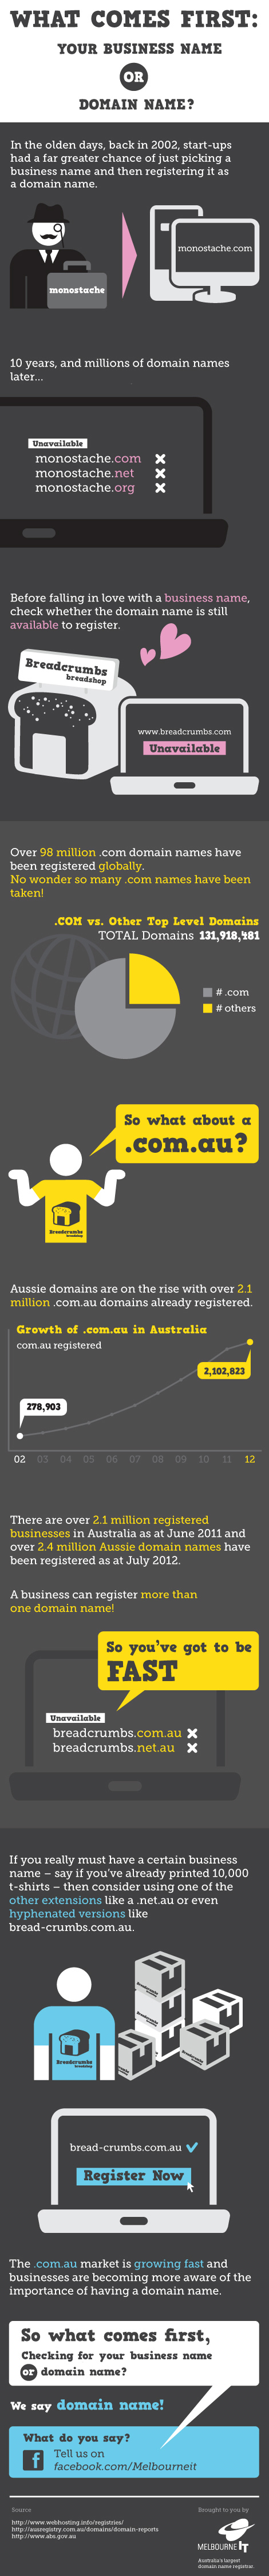 Business Name or Domain Name First? [Infographic]